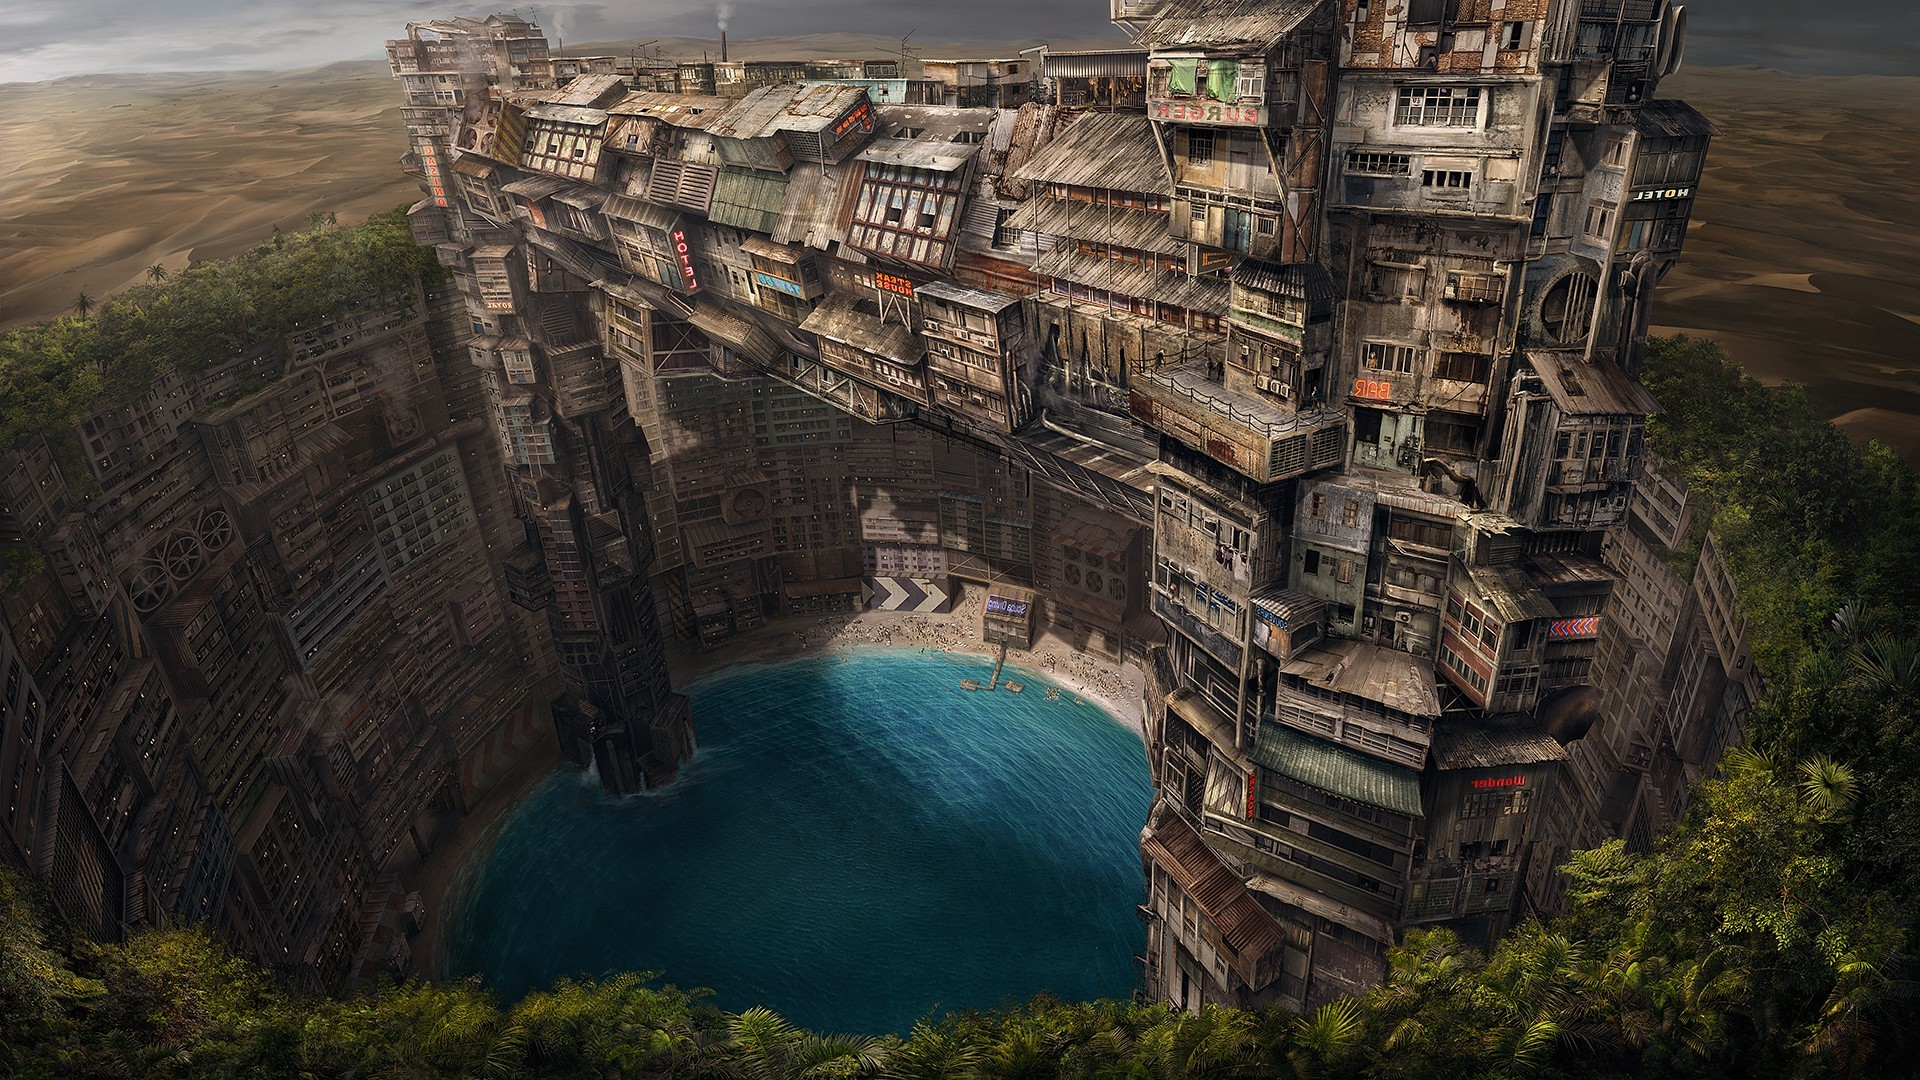 Minecraft Wallpaper 3d Building Fantasy Art Pond City Underground Wallpapers